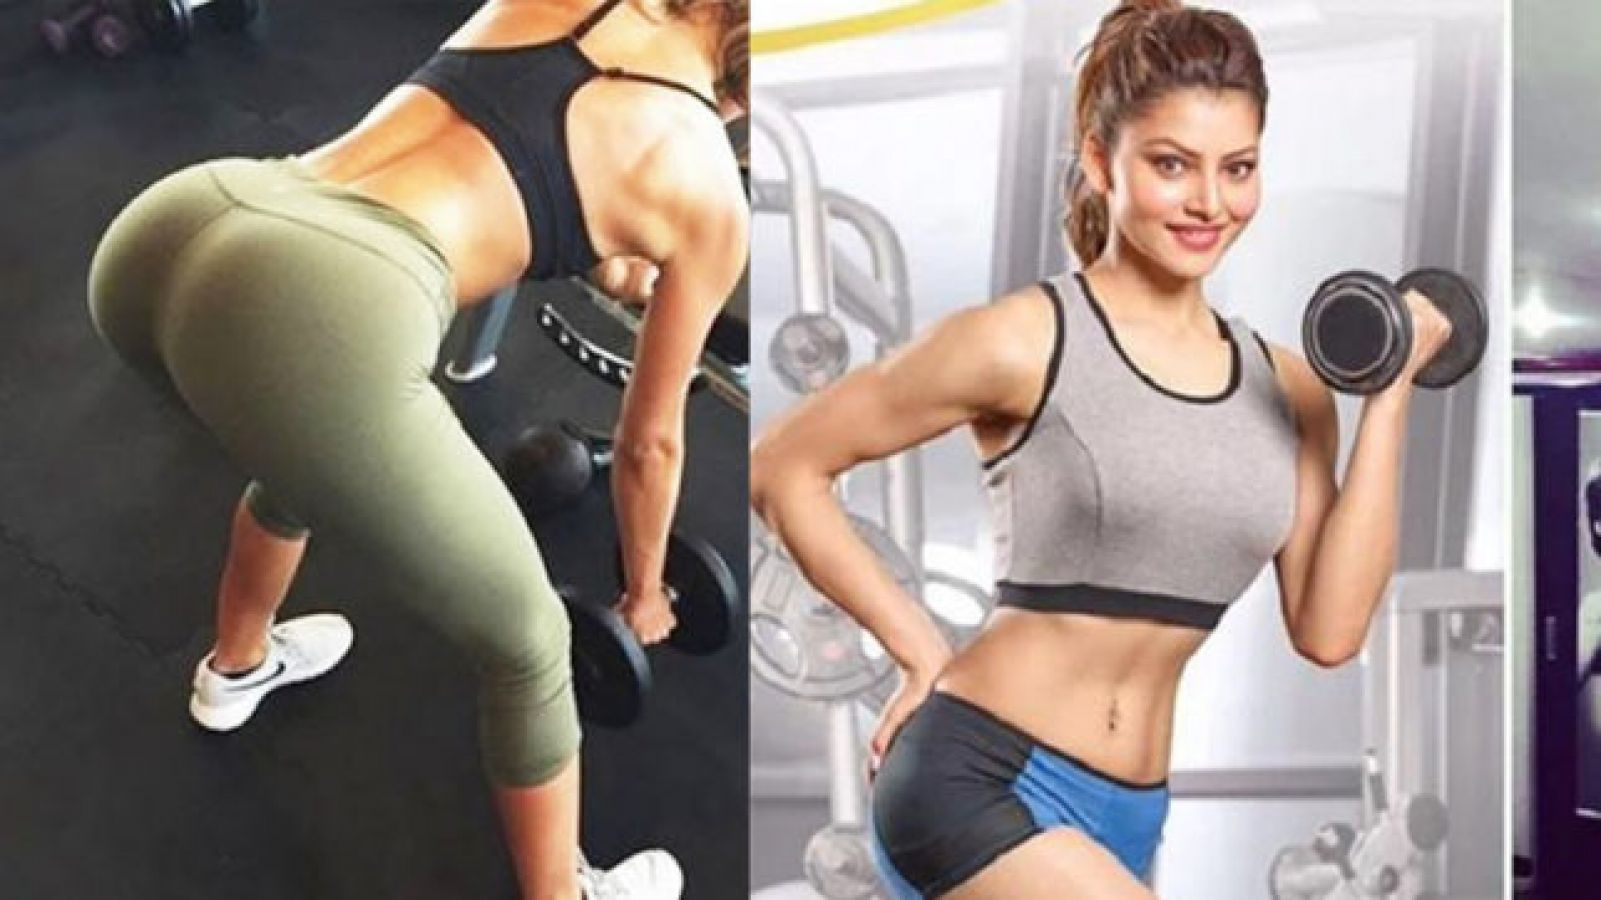 VIDEO: Urvashi's uses Dumbles at the Gym, Fans Made Such Comments ...